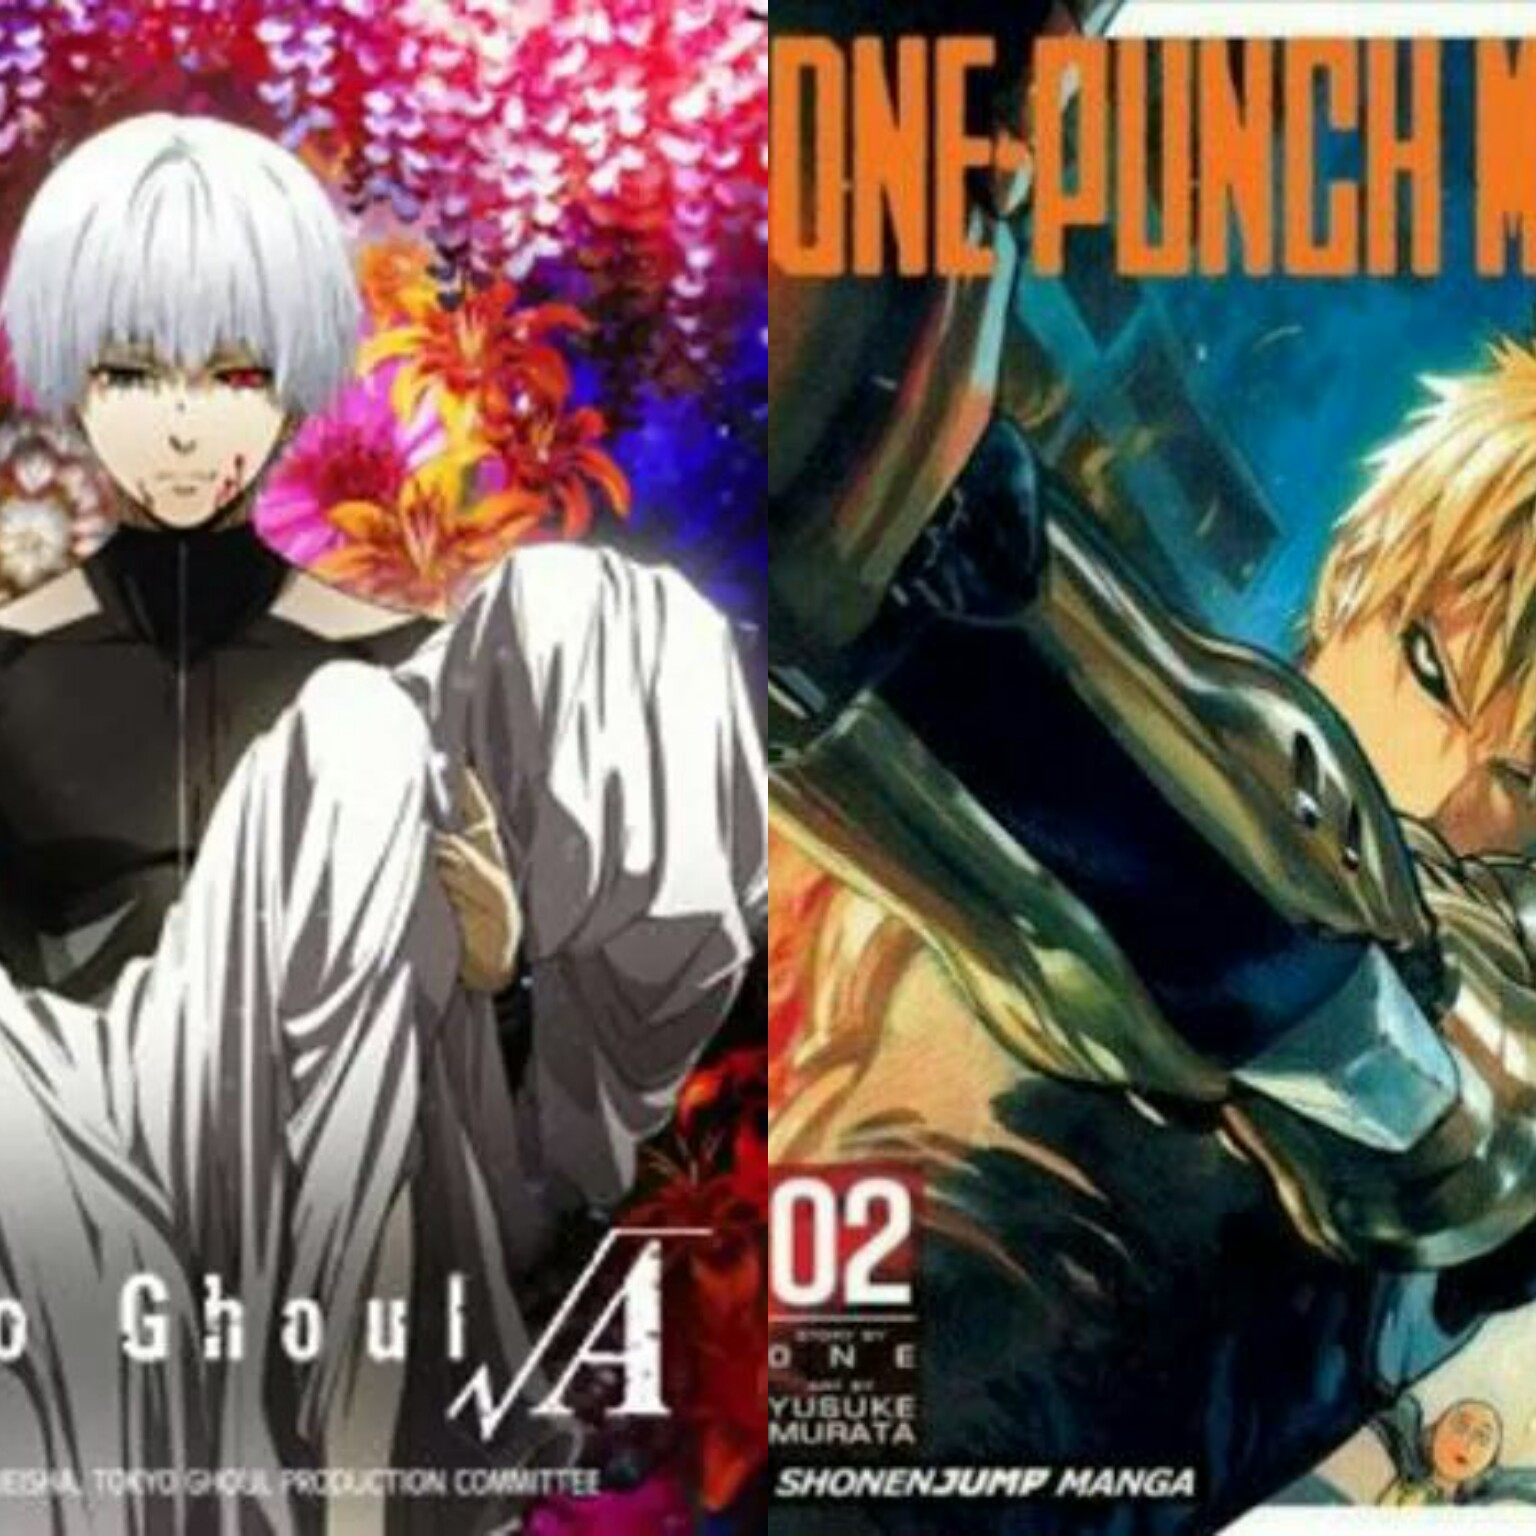 Tokyo Ghoul 3rd Season Airing With One Punch Man 2nd Season